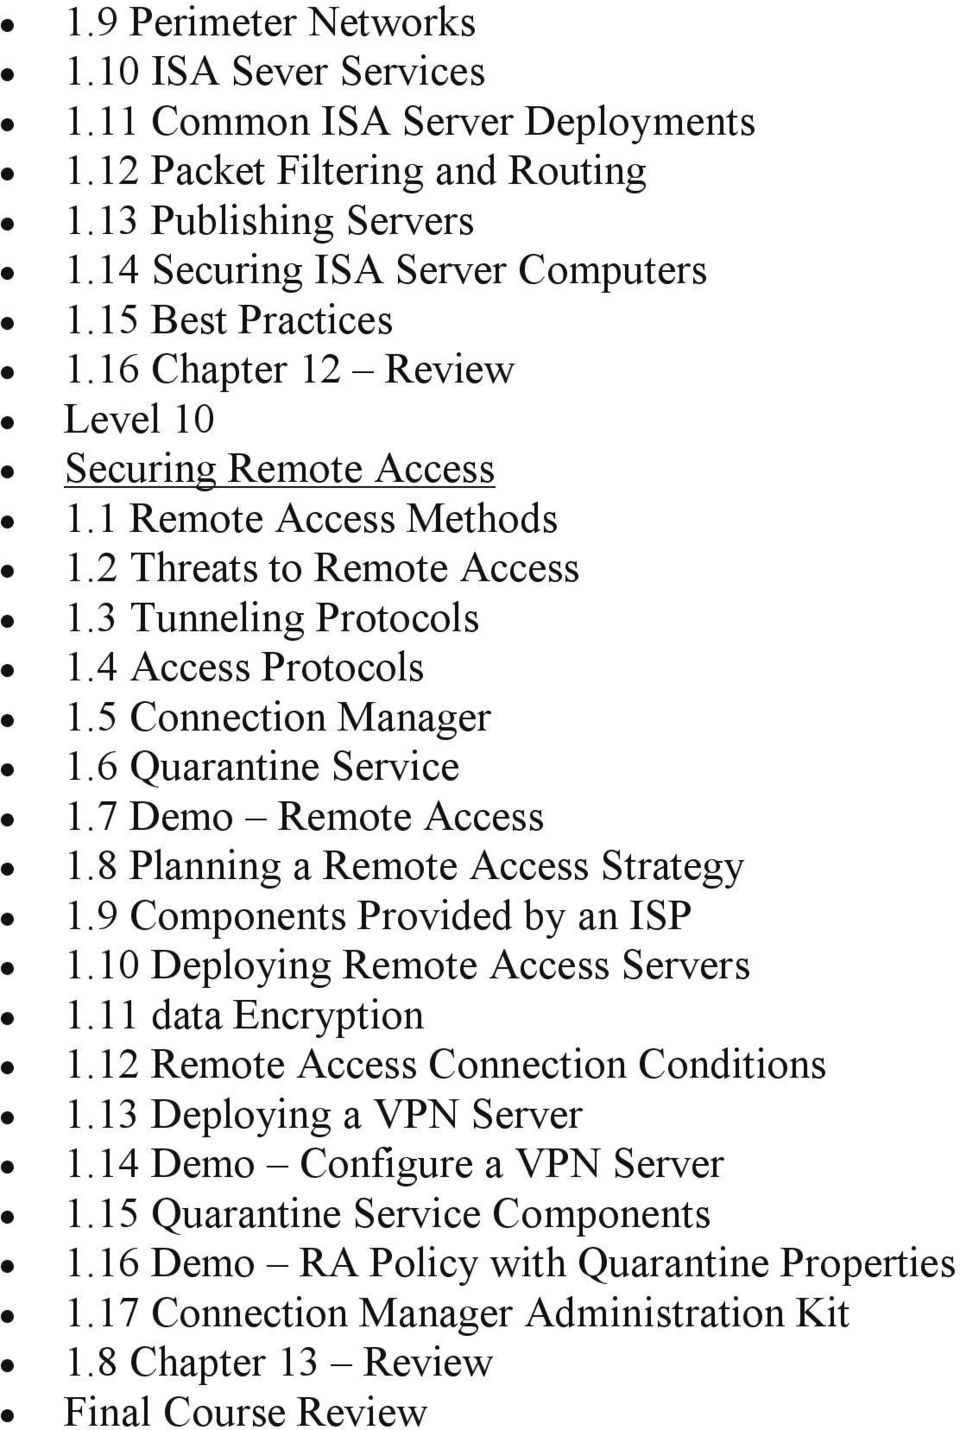 6 Quarantine Service 1.7 Demo Remote Access 1.8 Planning a Remote Access Strategy 1.9 Components Provided by an ISP 1.10 Deploying Remote Access Servers 1.11 data Encryption 1.